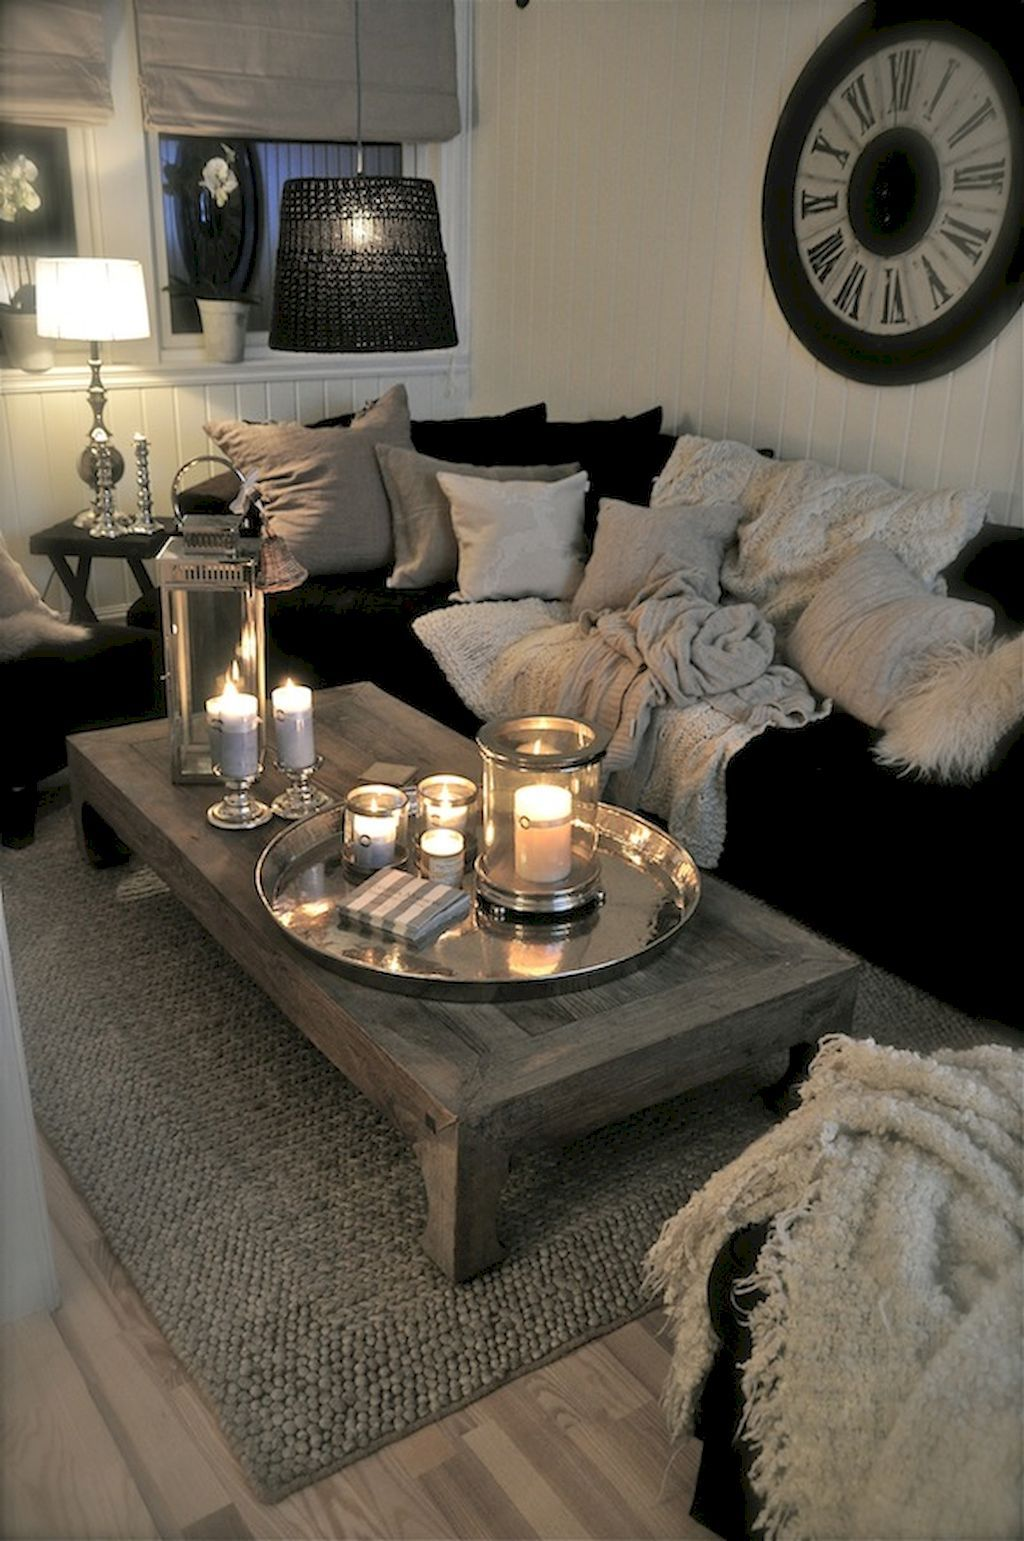 Diy College Apartment Decoration Ideas On A Budget 28